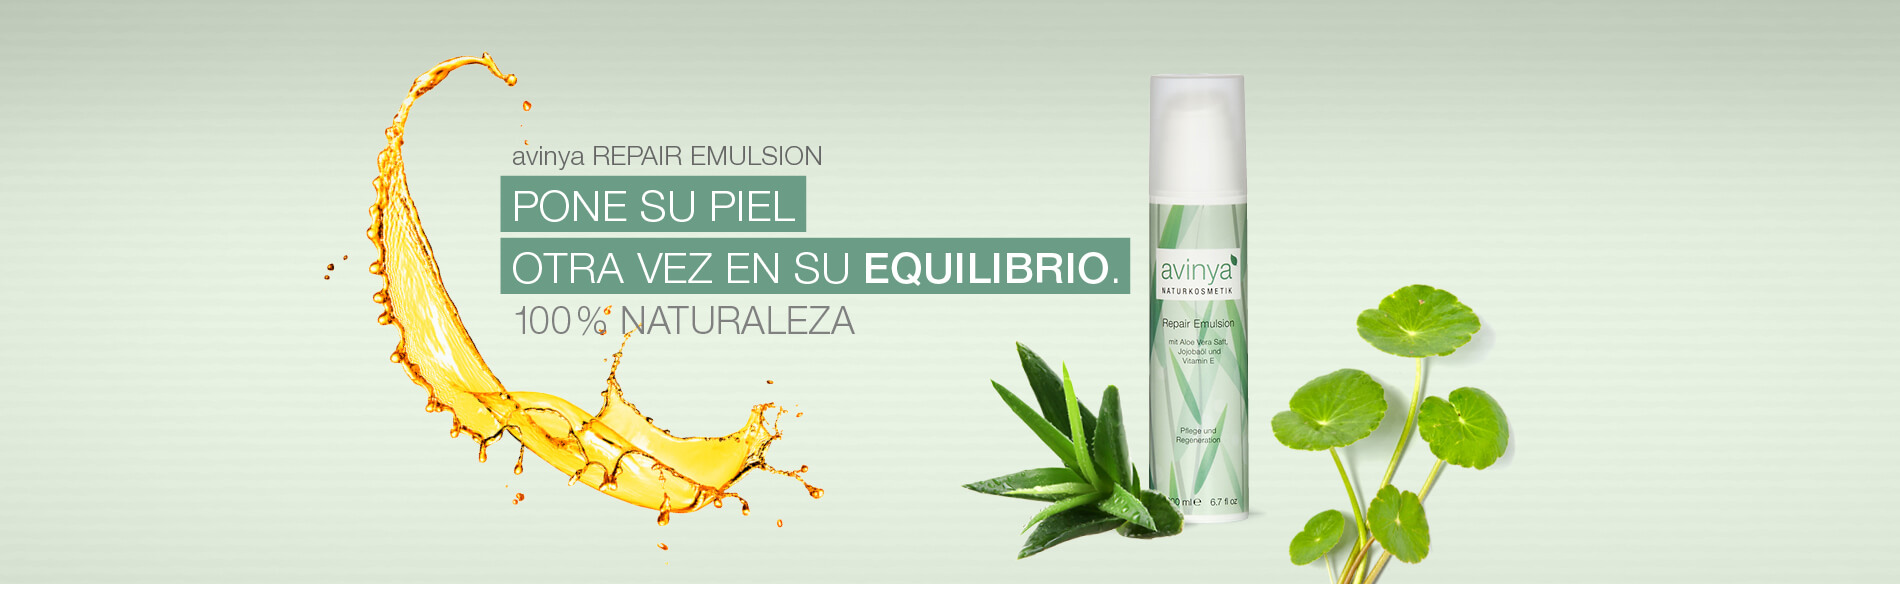 avinya REPAIR EMULSION - BRINGS YOUR SKIN BACK INTO BALANCE.